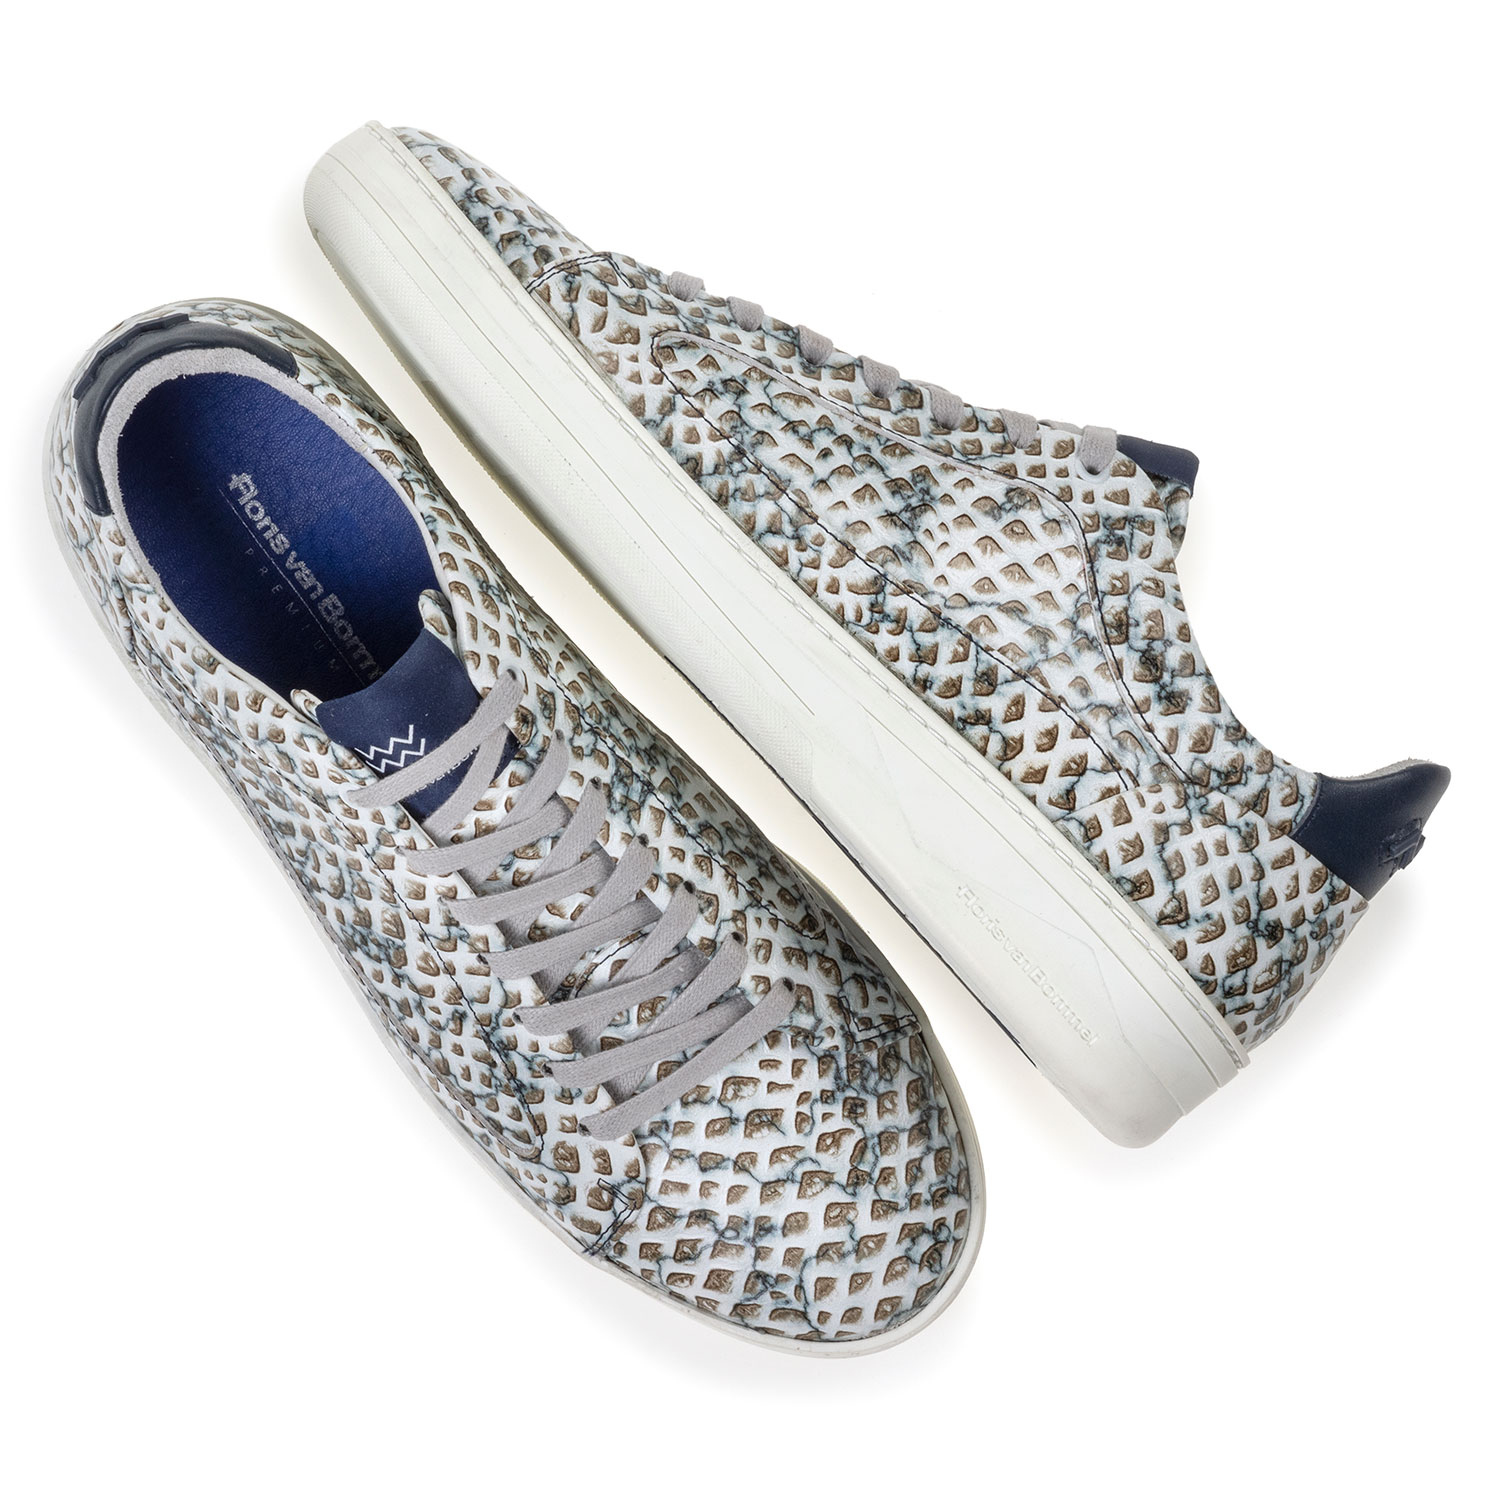 13266/00 - Sneaker printed leather sand-coloured